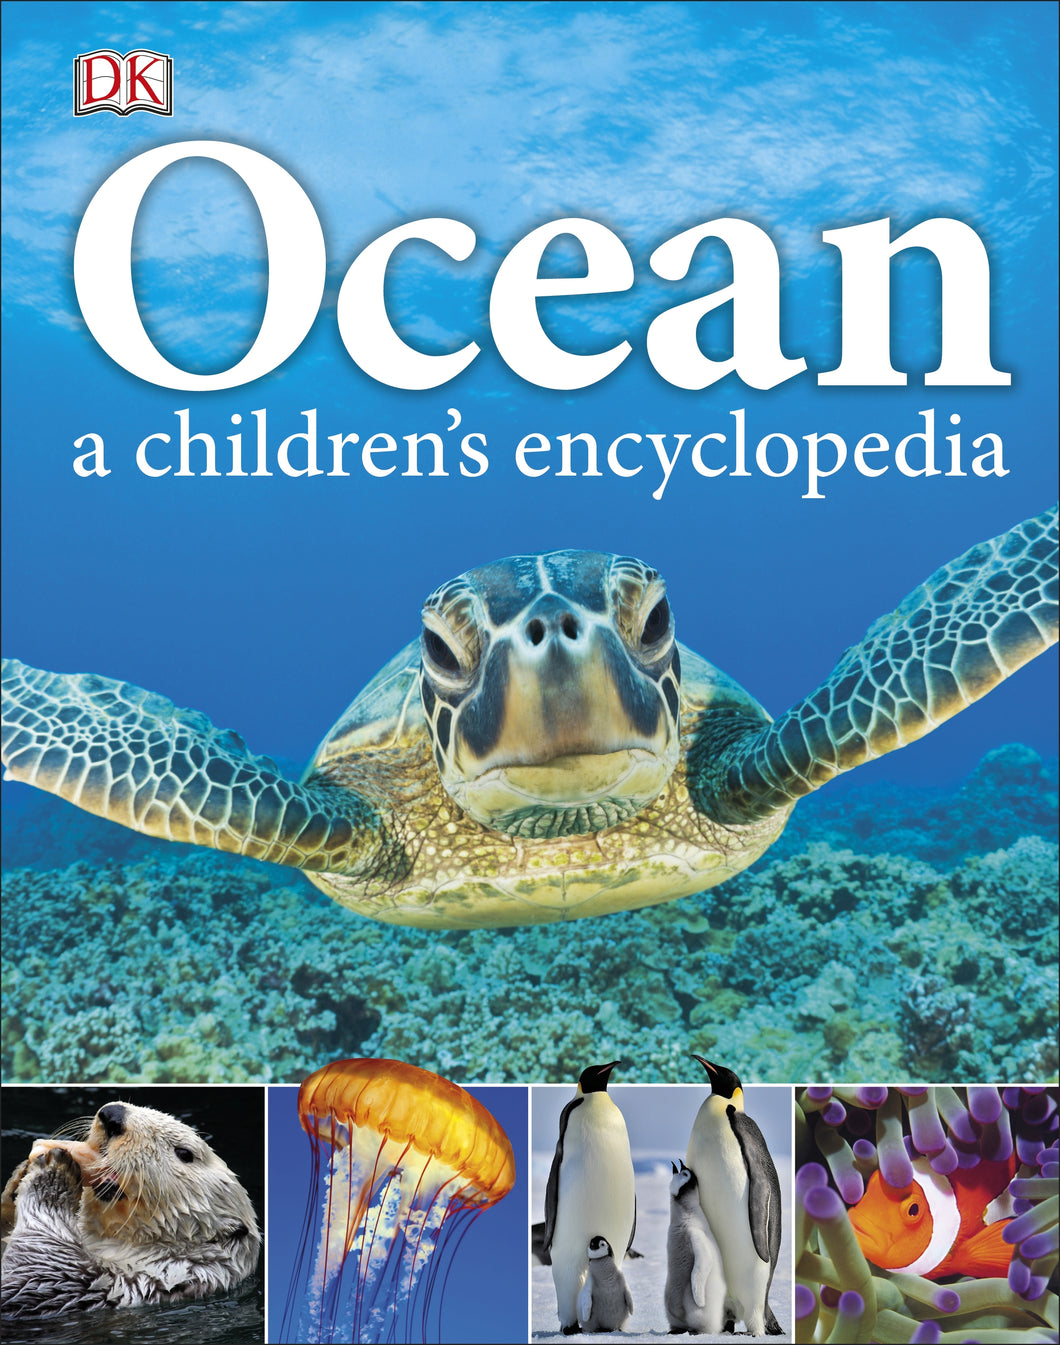 Beautiful children's book of photographic images of oceans and the creatures that live in them. Large sea turtle swimming in the blue sea on the cover.